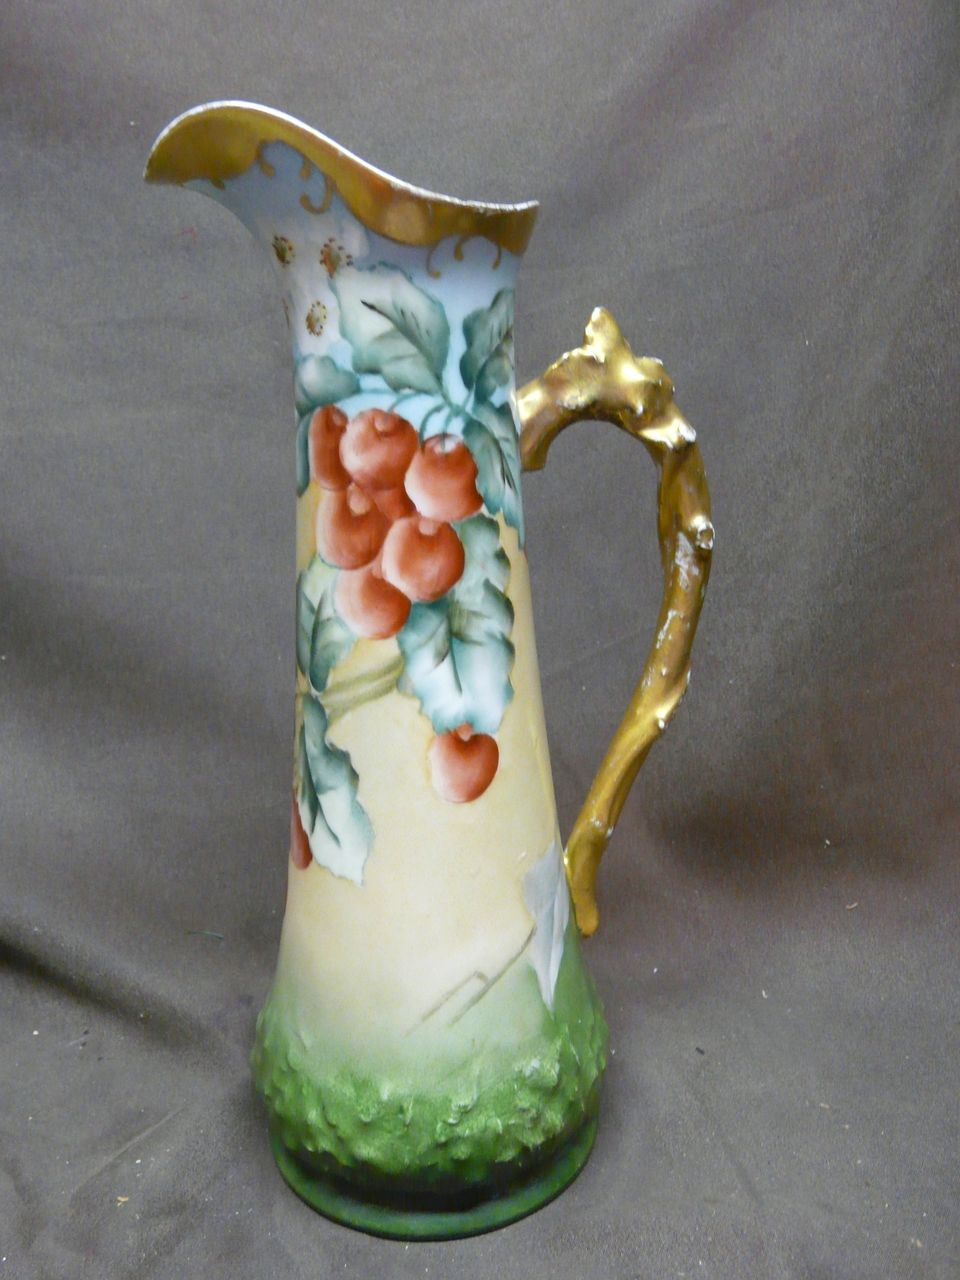 Tressemann & Vogt Limoges France Hand Painted Ewer / Pitcher